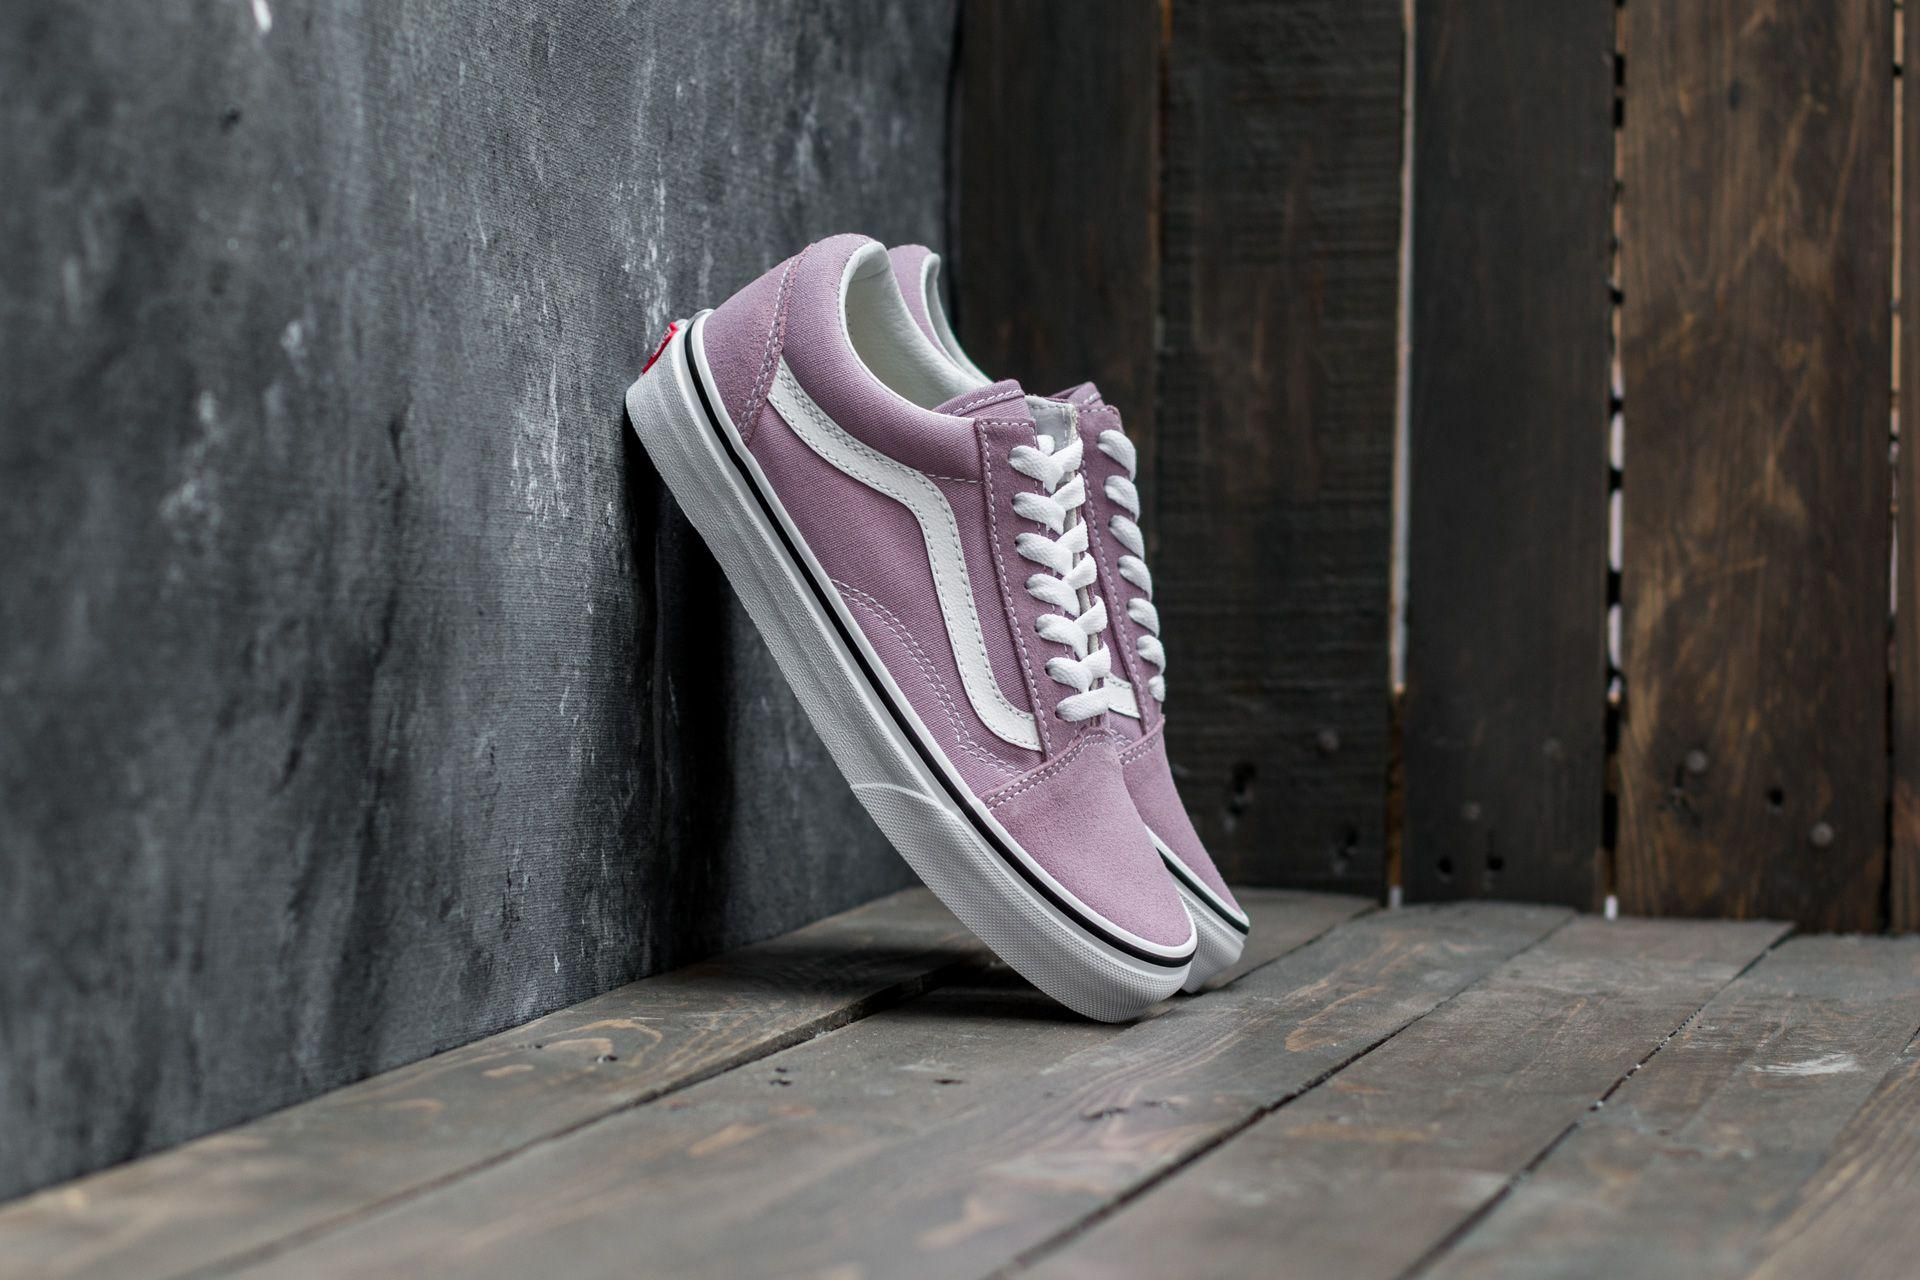 8eea1b2b16b6 Vans Old Skool Sea Fog  True White - Lyst